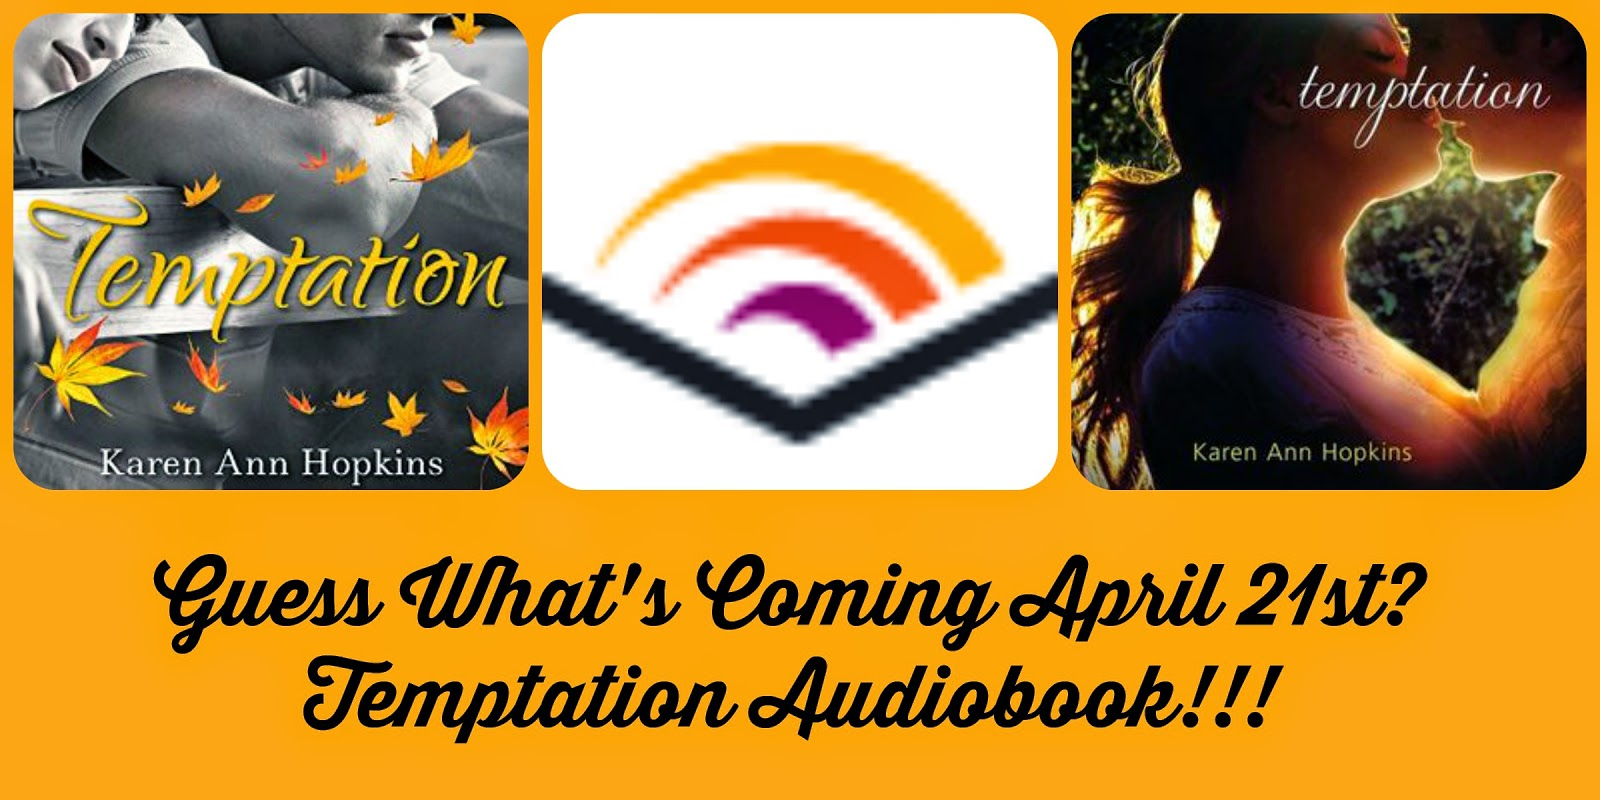 http://www.audible.com/pd/Teens/Temptation-Audiobook/B00UUNLDSK